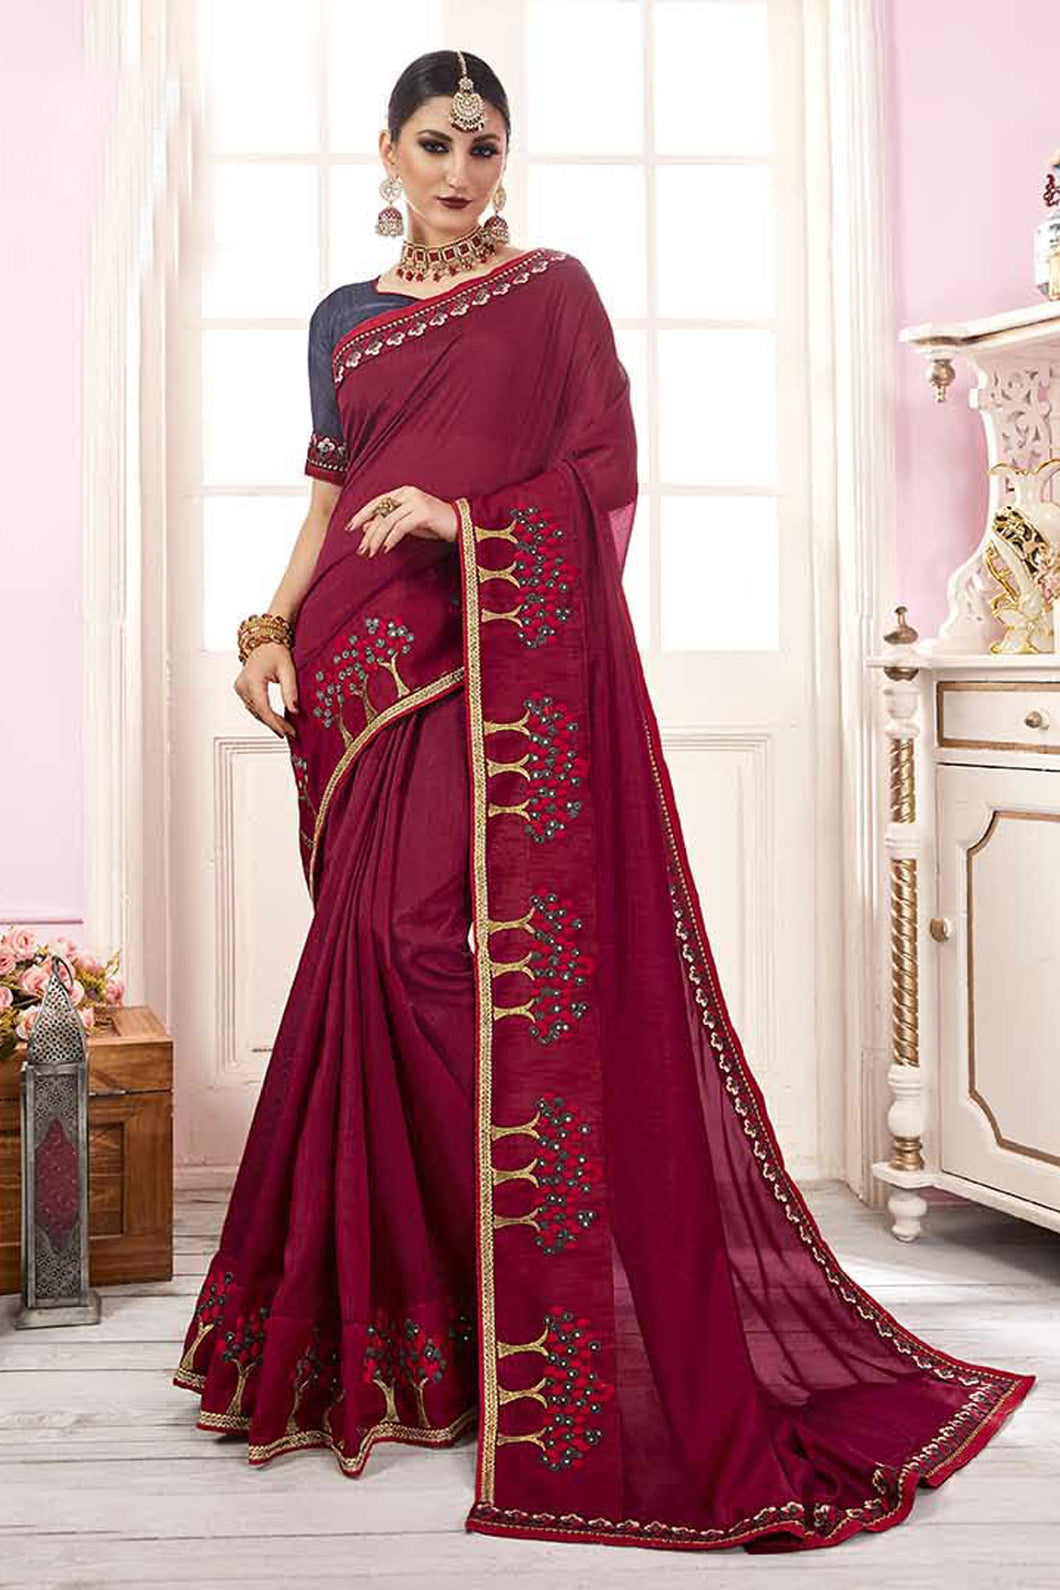 Bhelpuri Maroon Satin Georgette Embroidered Lace Border Saree with Blouse Piece